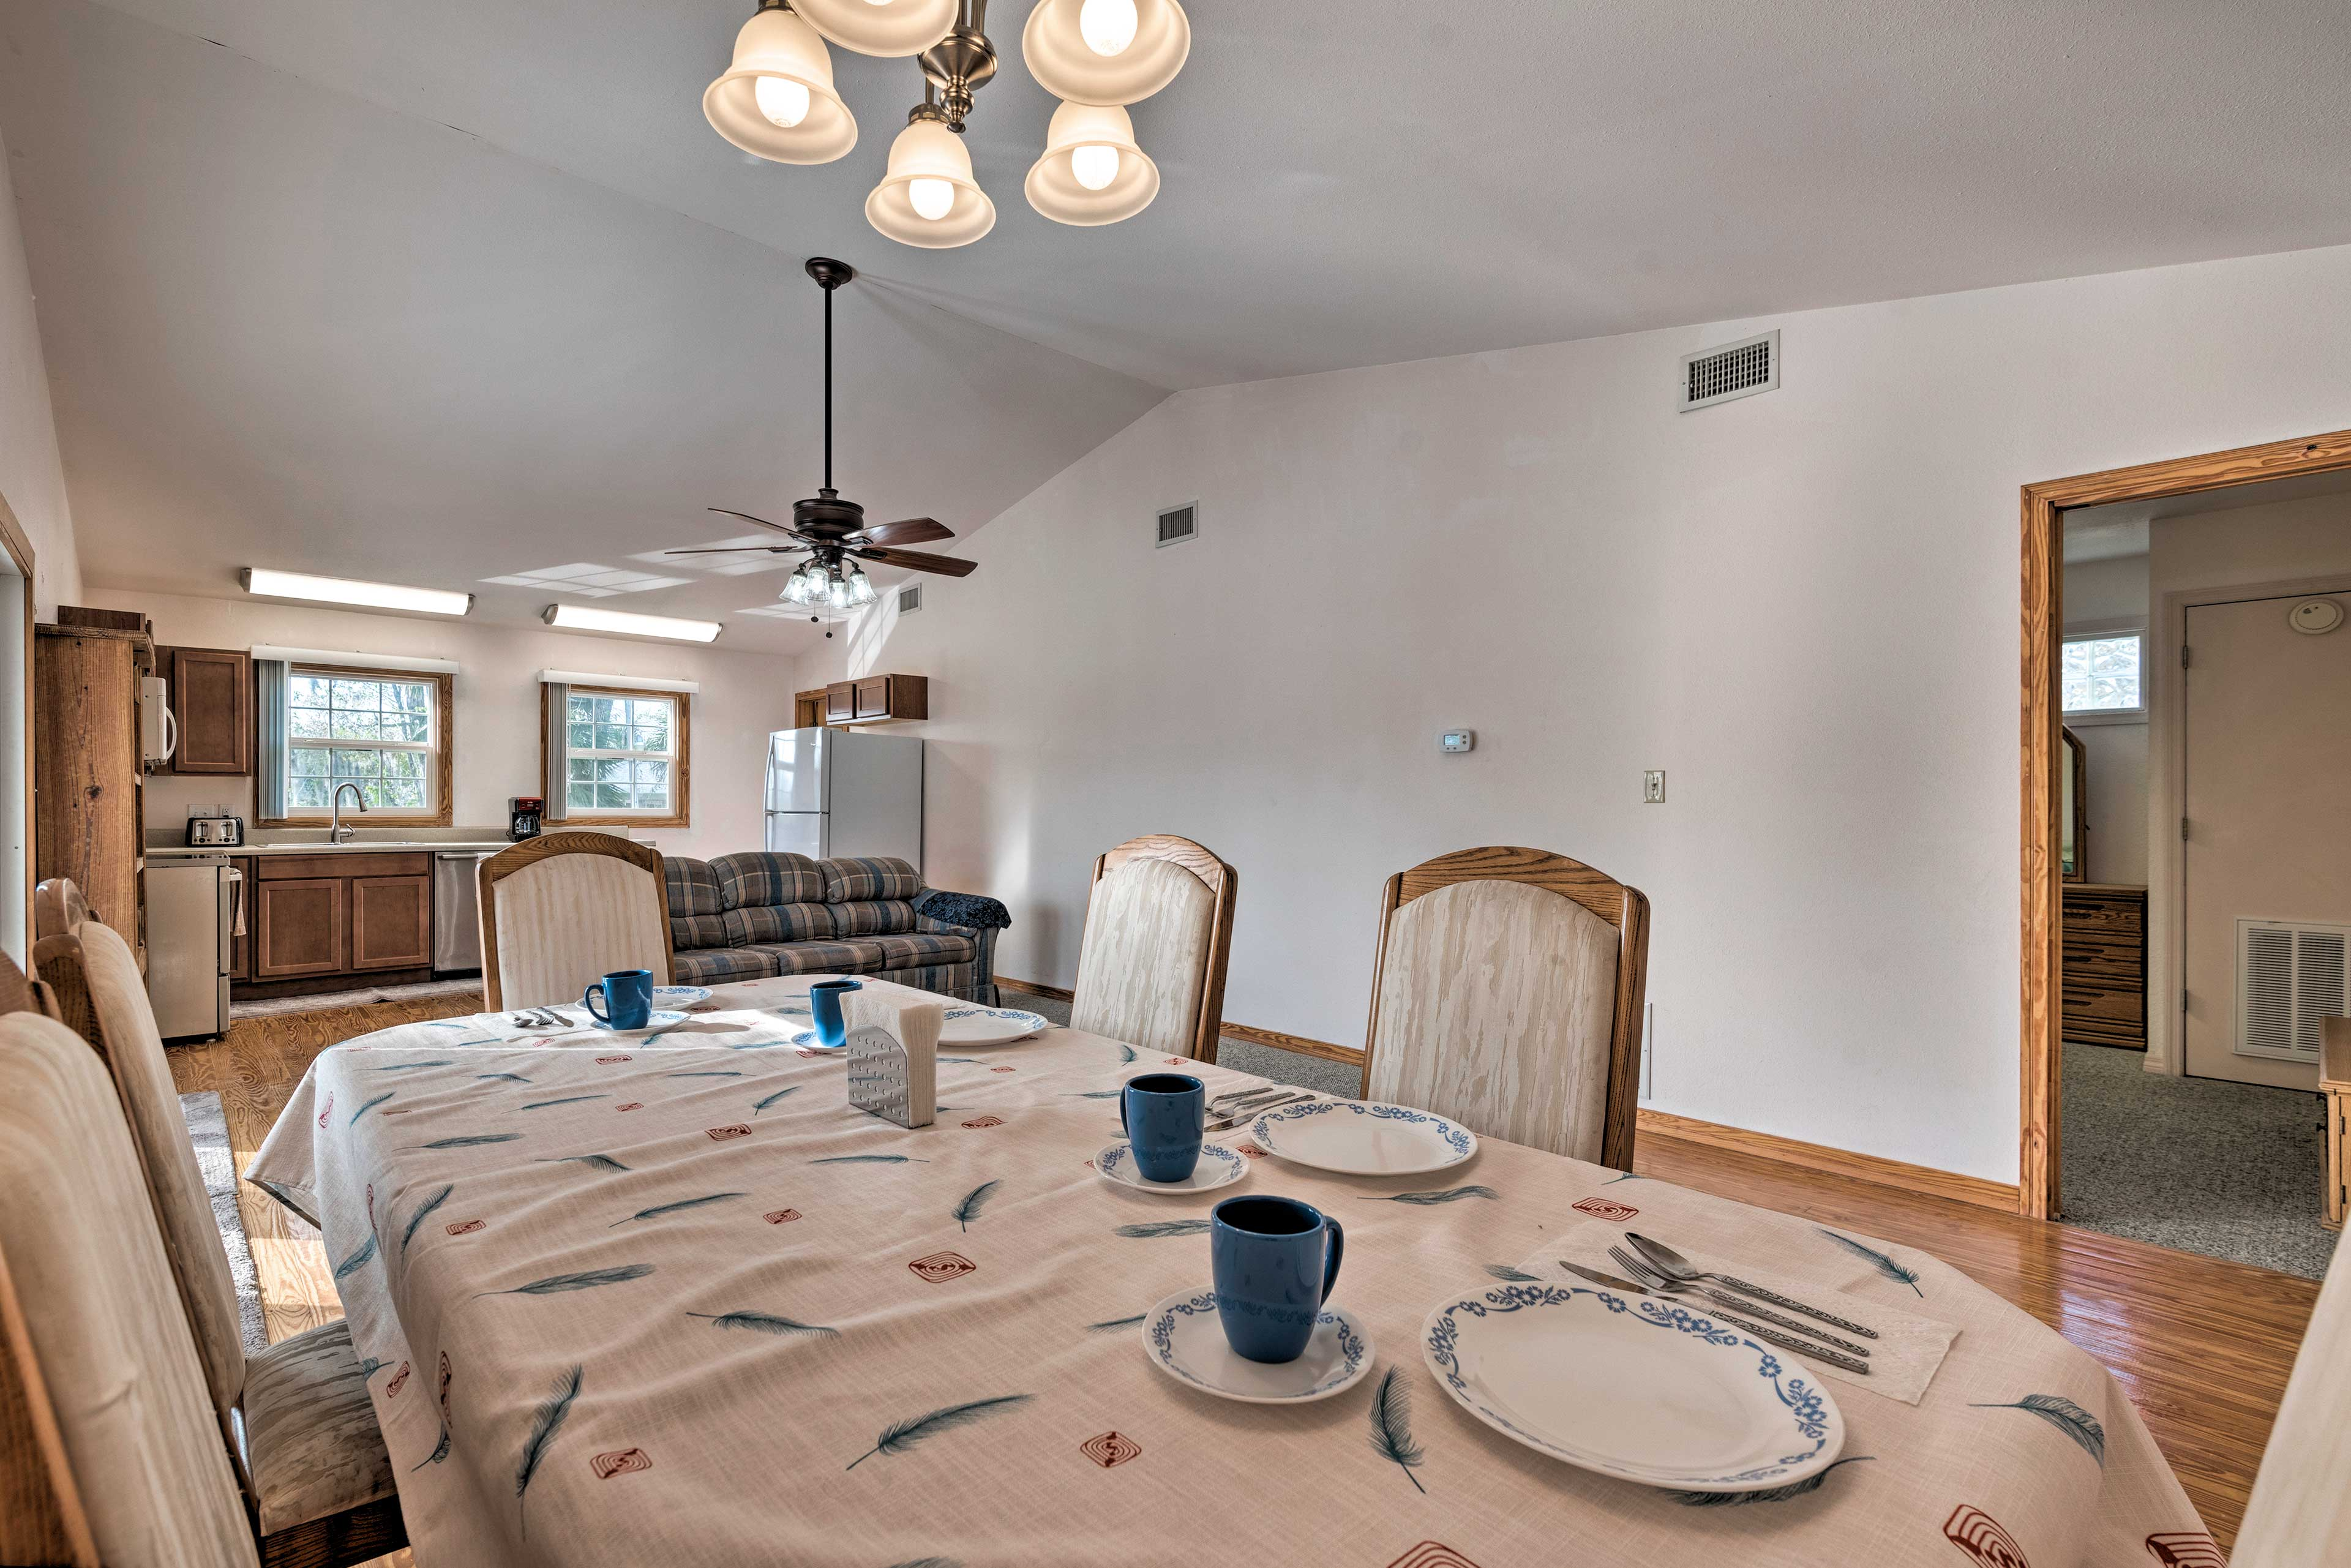 Savor meals together at the 5-person dining table.